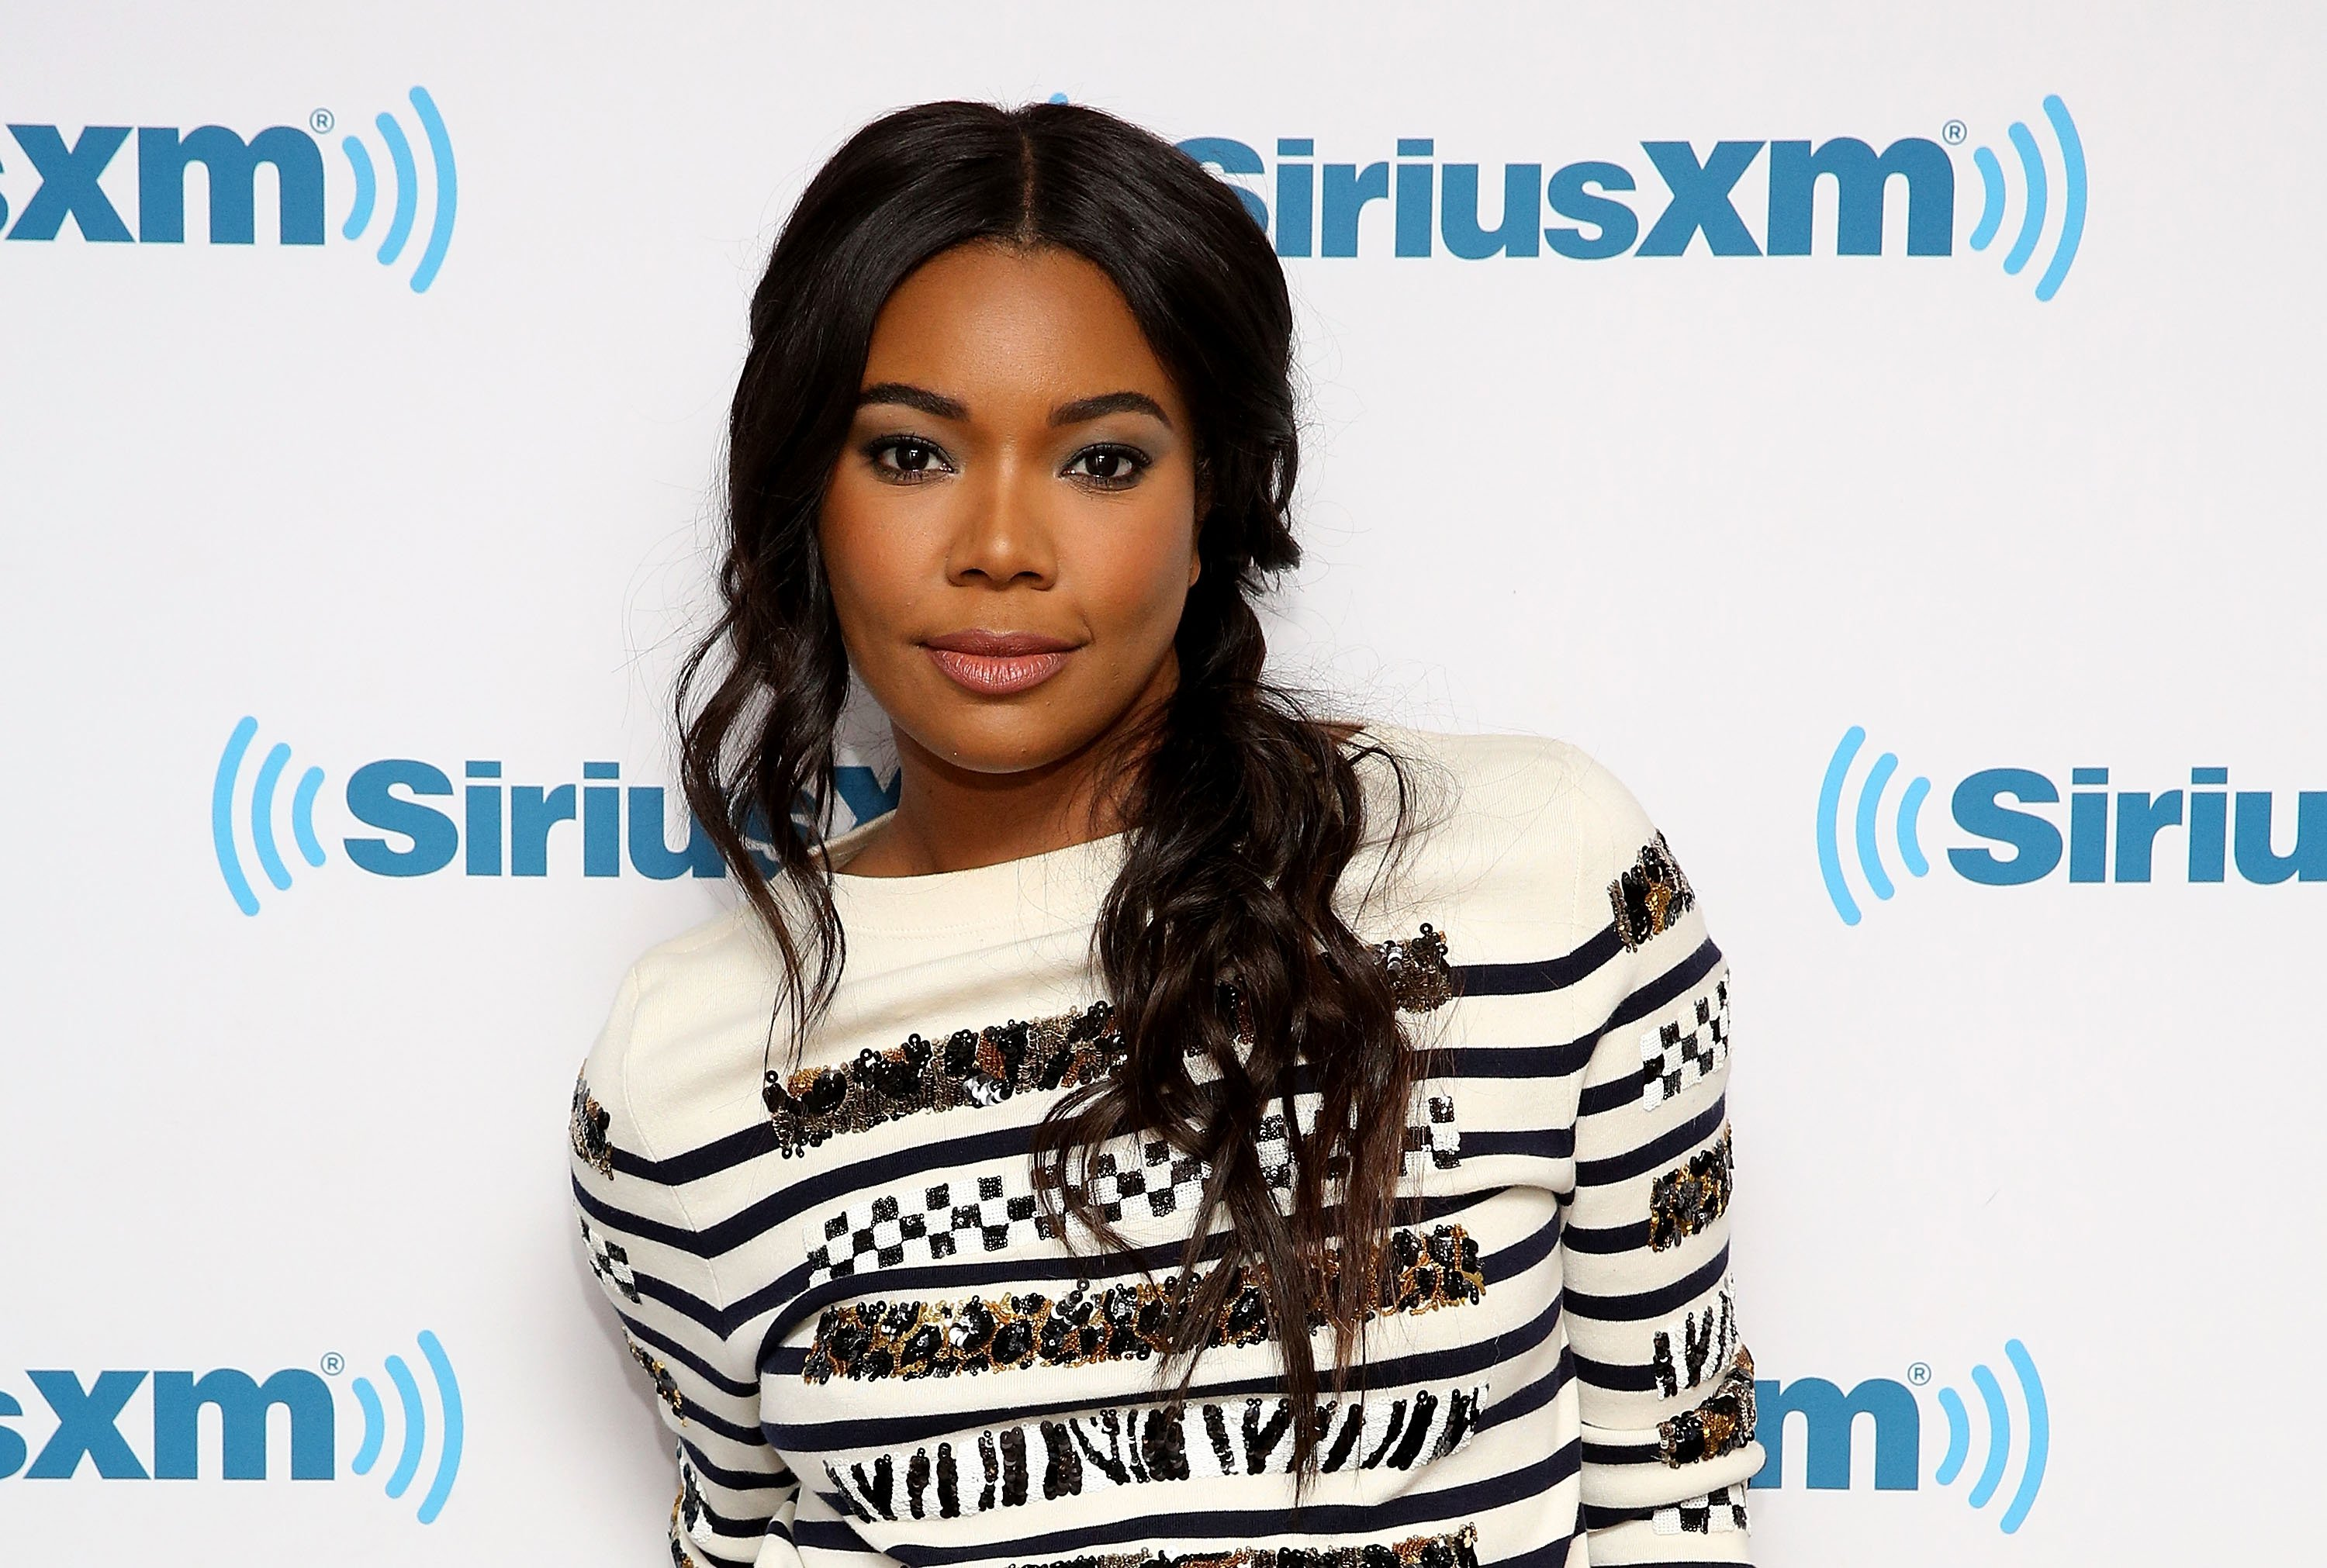 Gabrielle Union visits at SiriusXM Studio on Nov. 1, 2016 in New York City | Photo: Getty Images